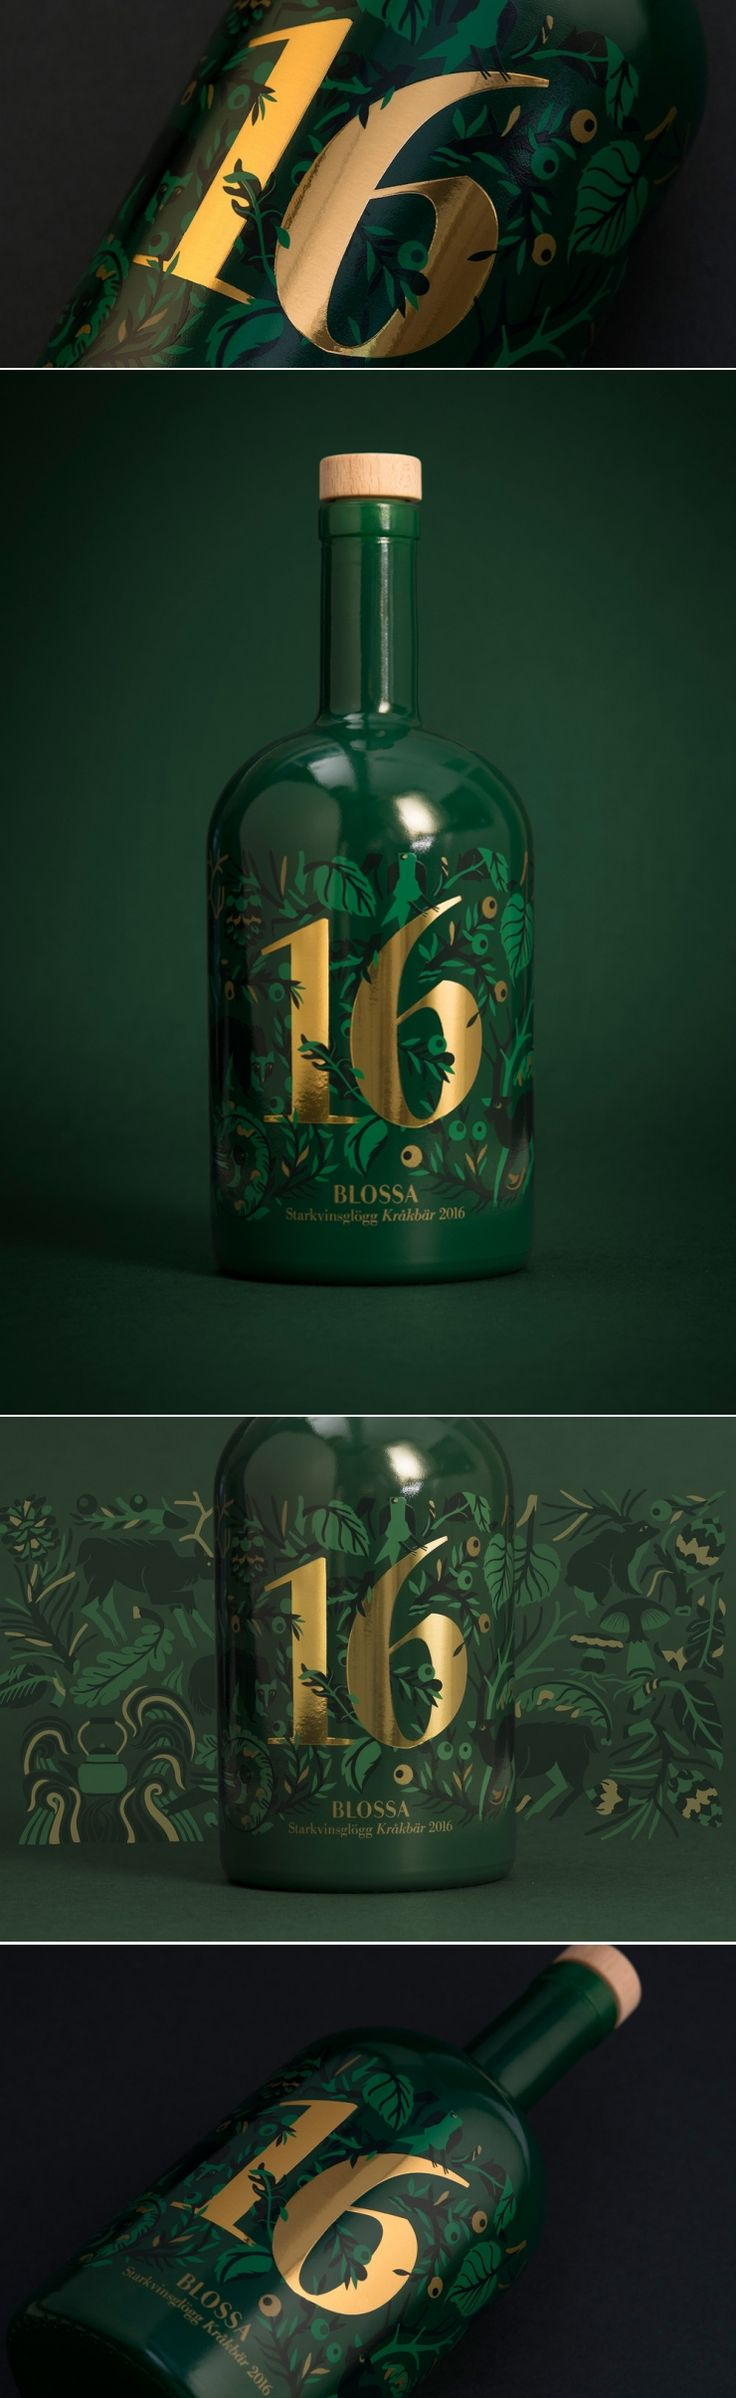 Blossa Annual 2016 Glögg Mulled Wine — The Dieline - Branding & Packaging Design